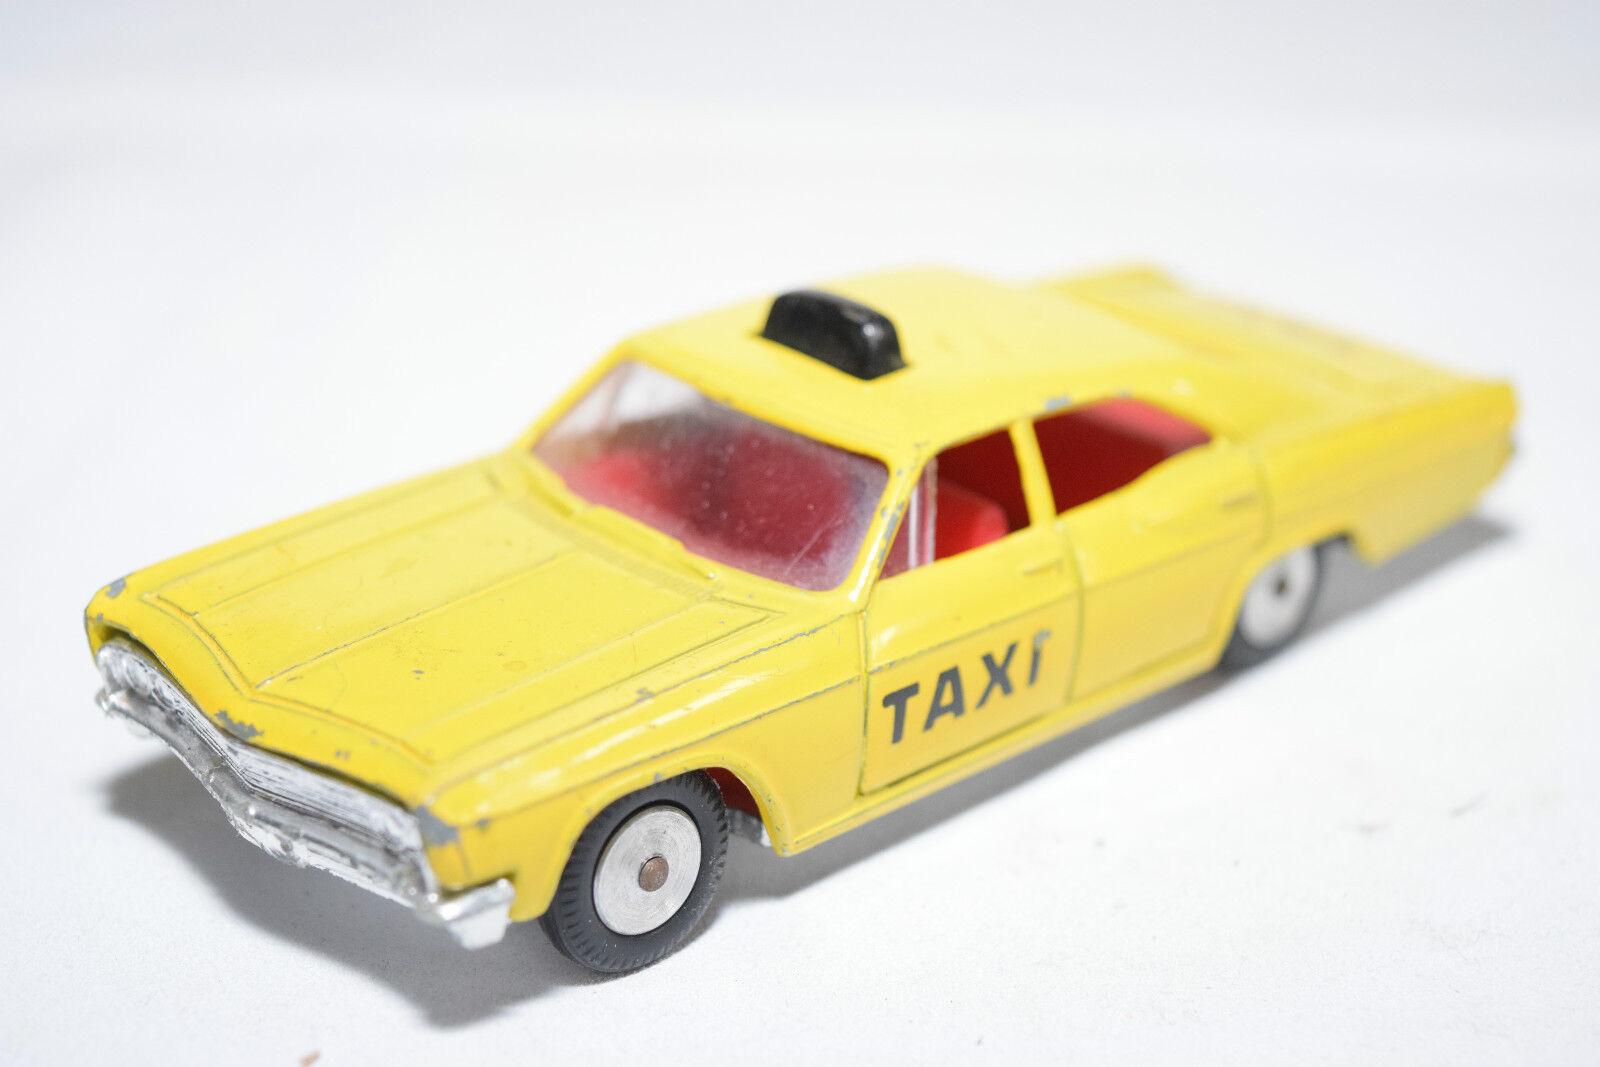 SABRA GAMDAKOOR 8116 CHEVROLET TAXI YELLOW EXCELLENT CONDITION